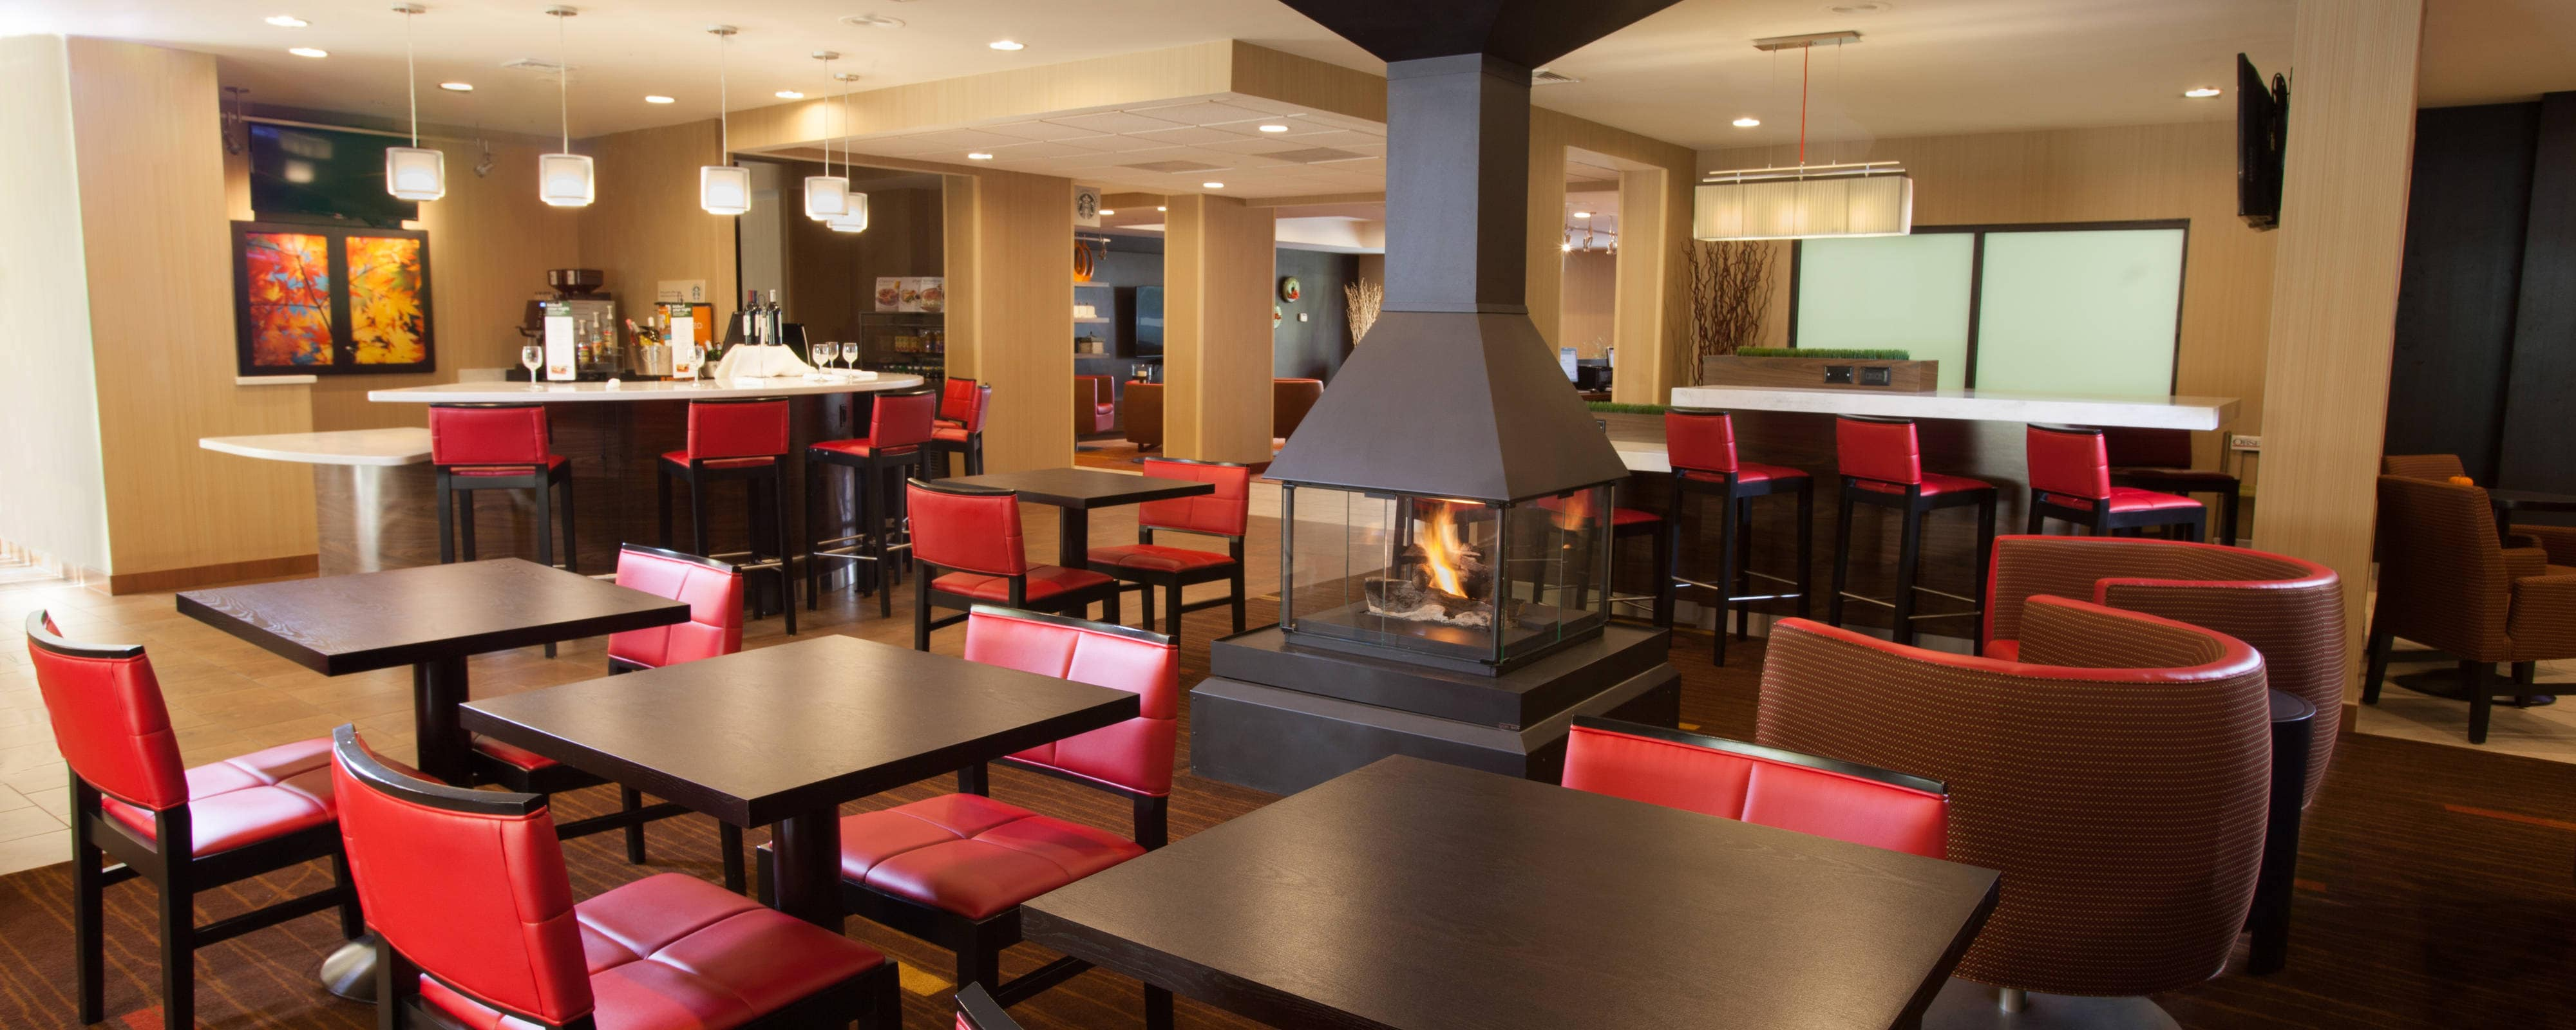 Williston hotel restaurants